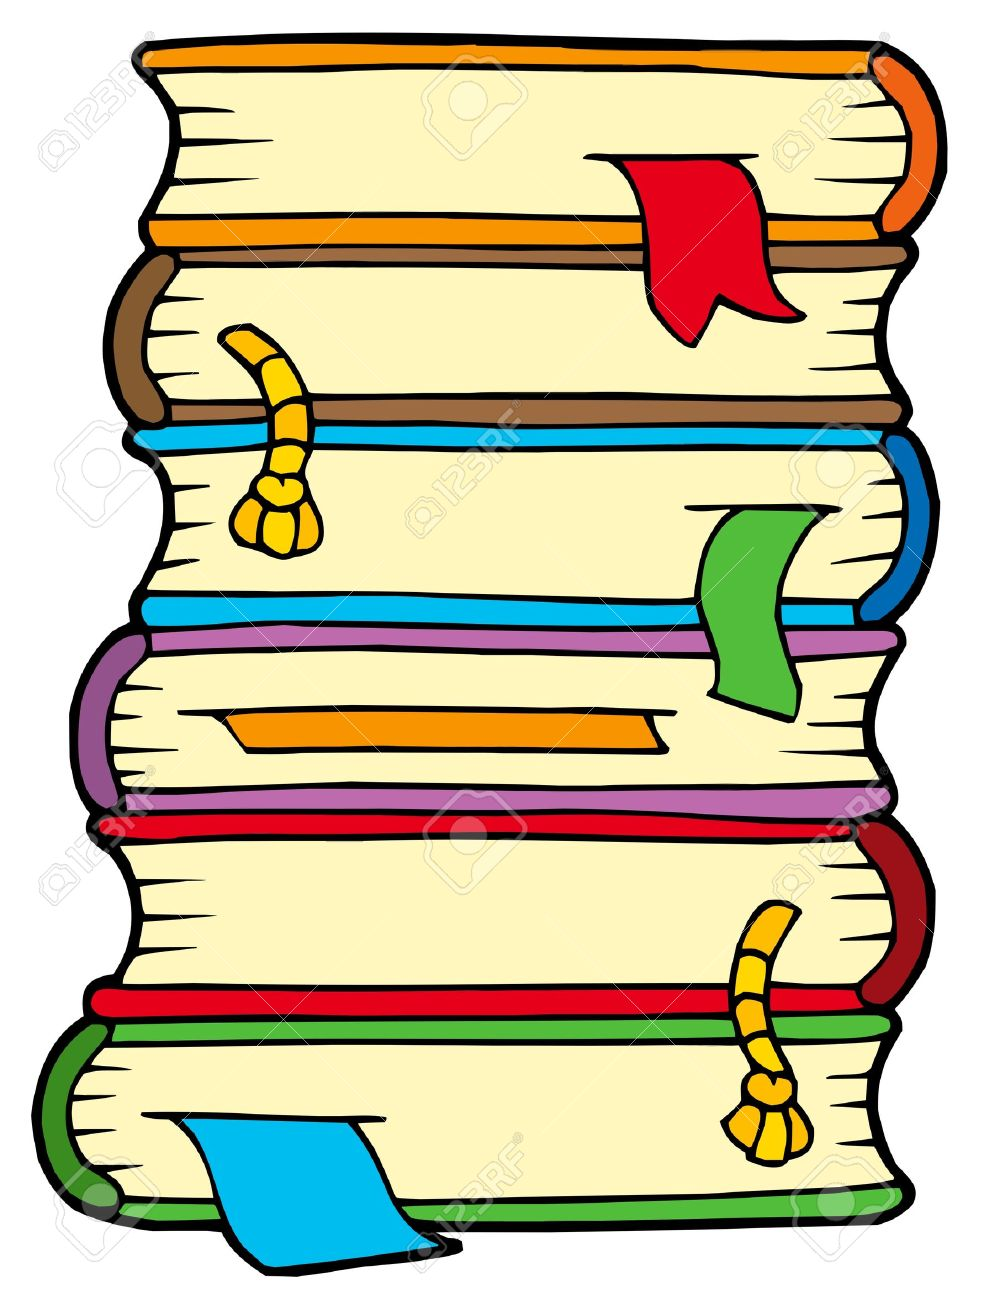 984x1300 Pile Of Old Books Vector Illustration Free Cliparts